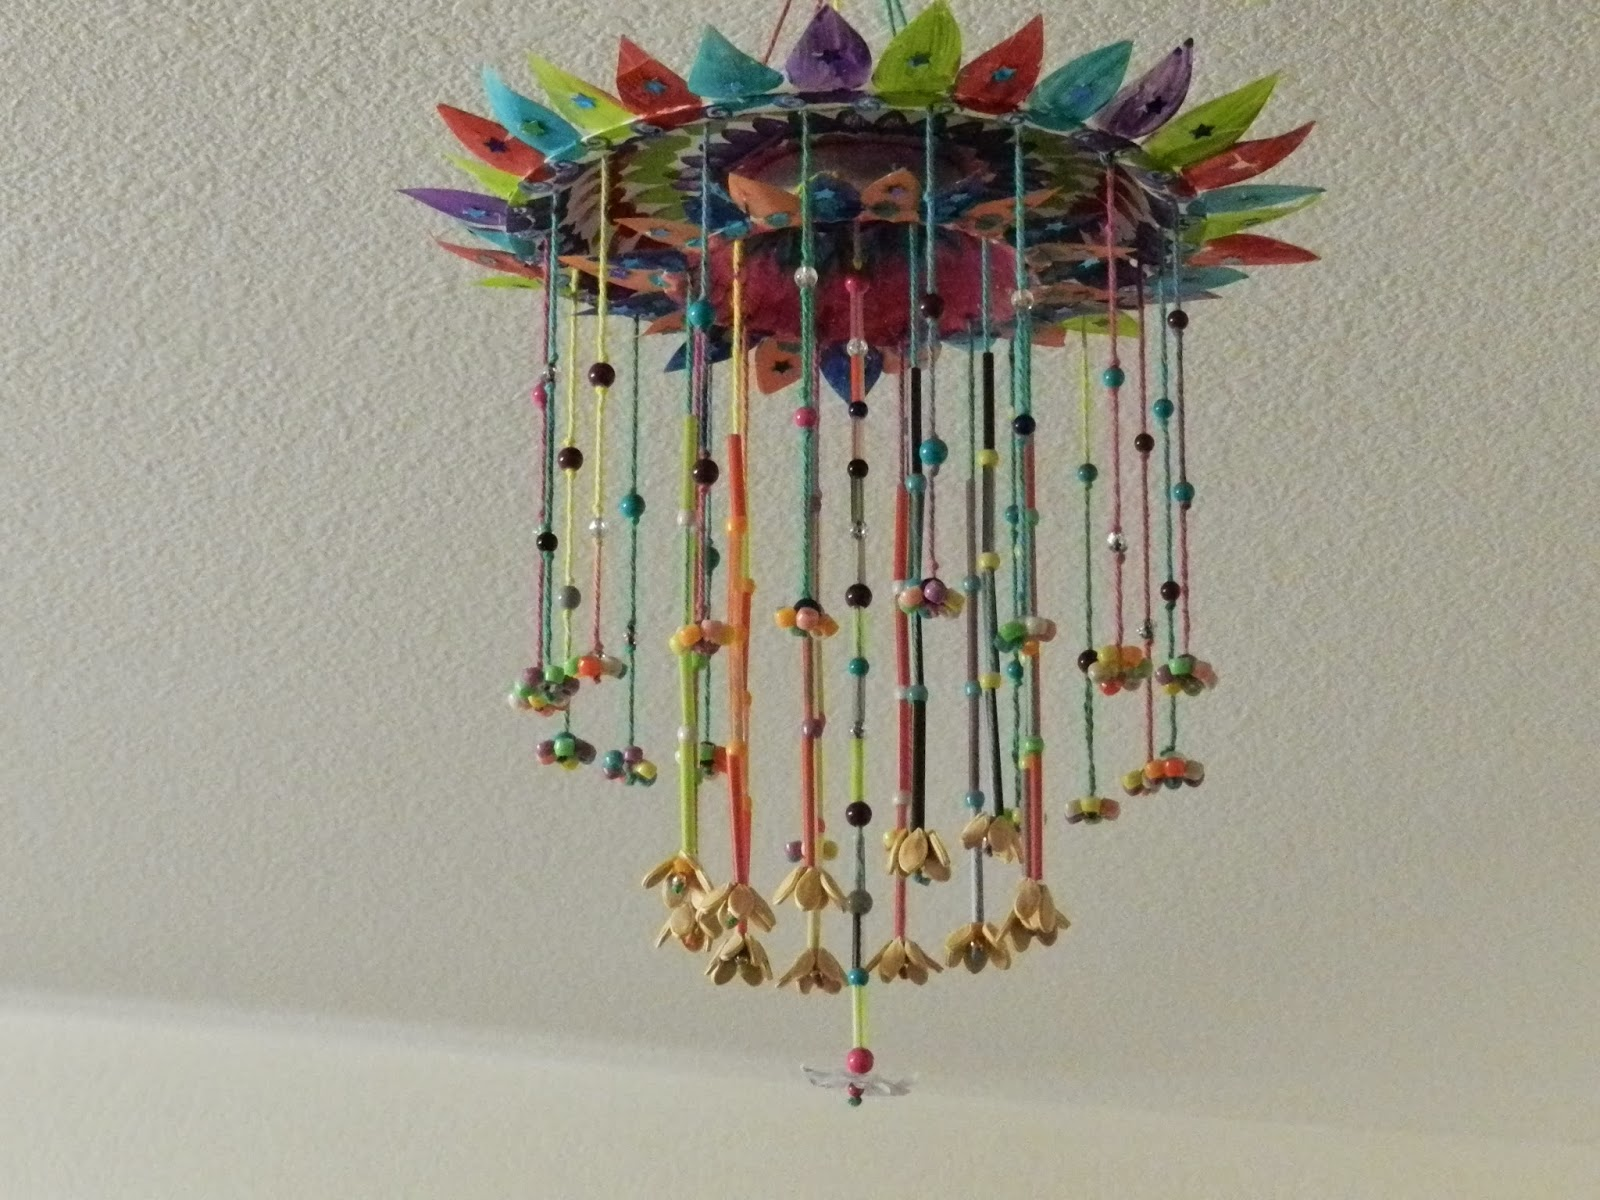 Creative DIY Crafts Paper Plate Hanging Craft With Beads And